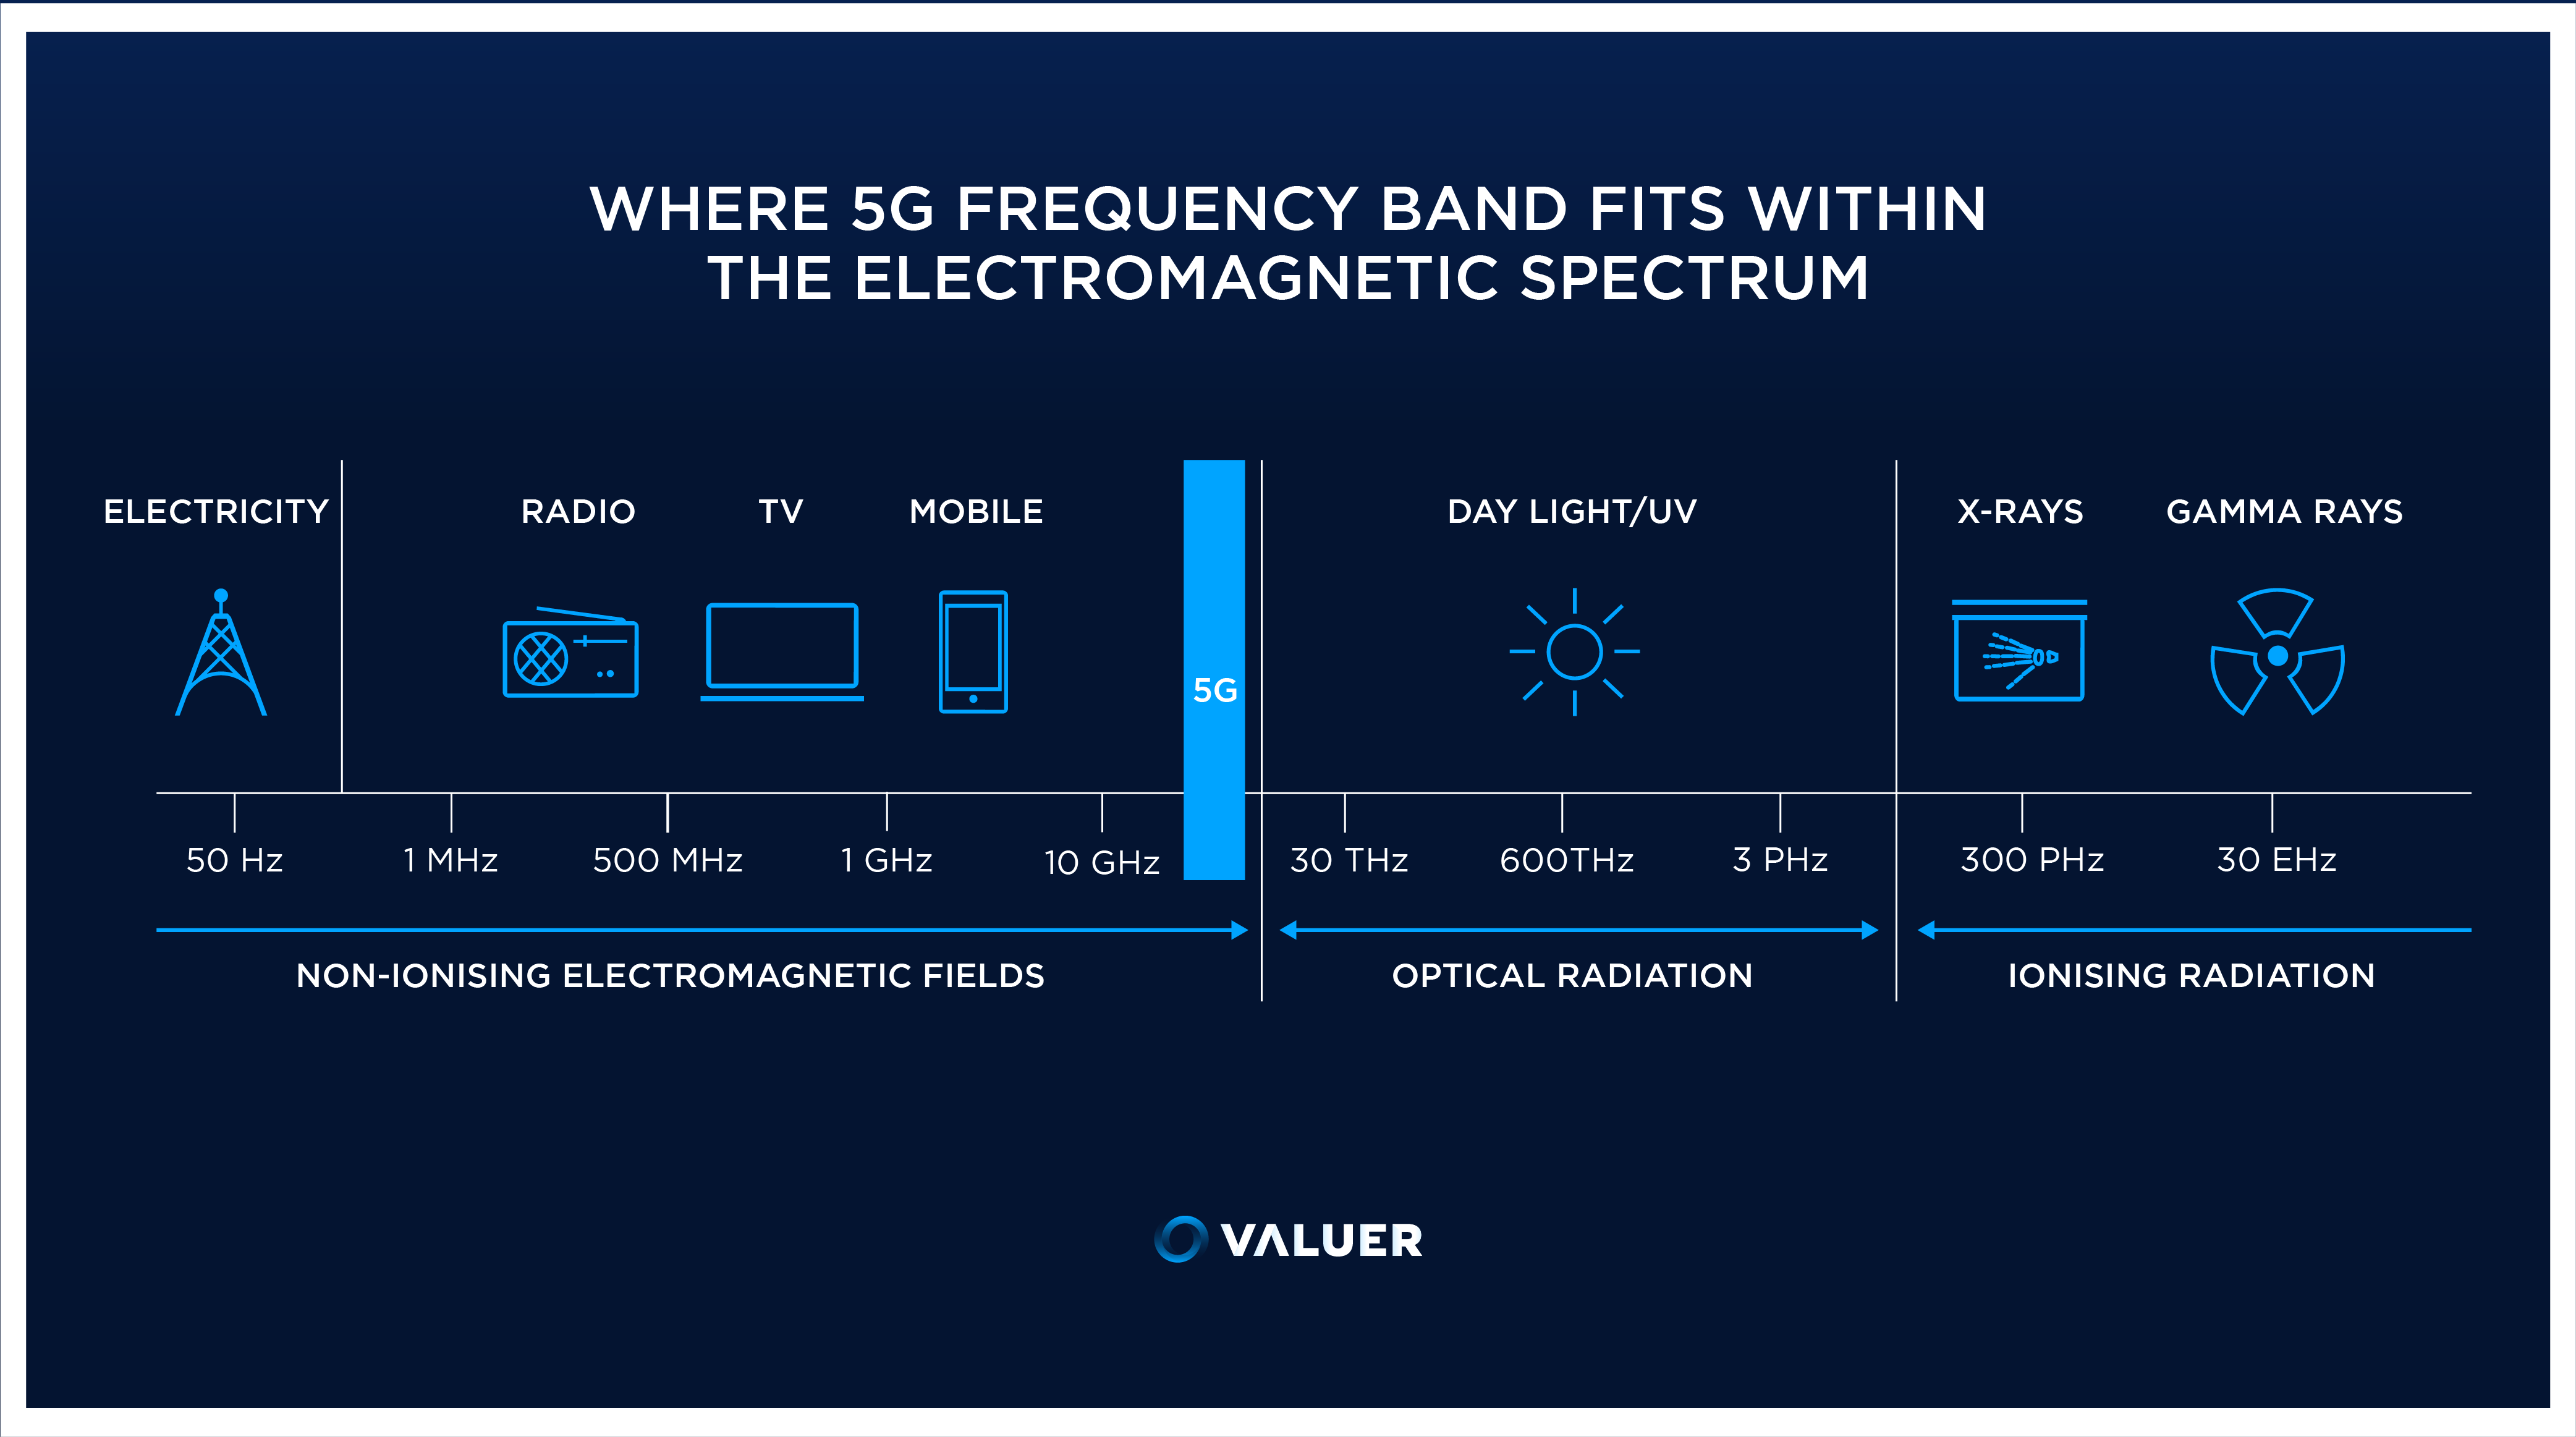 5G frequency band